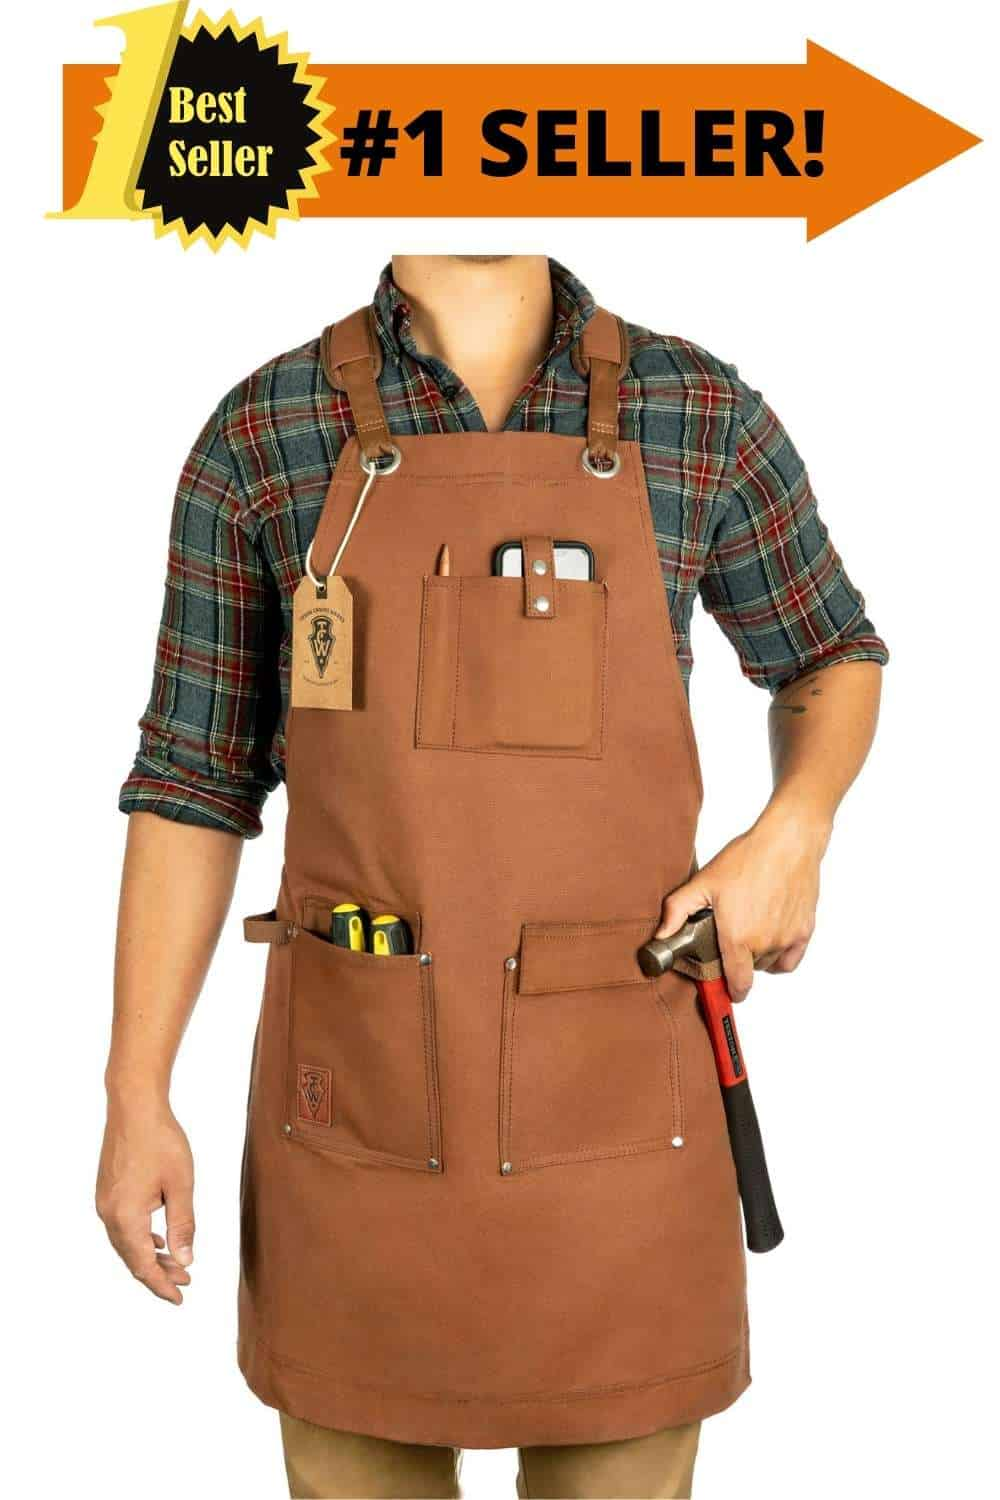 texas-canvas-wares-deluxe-woodworking-apron